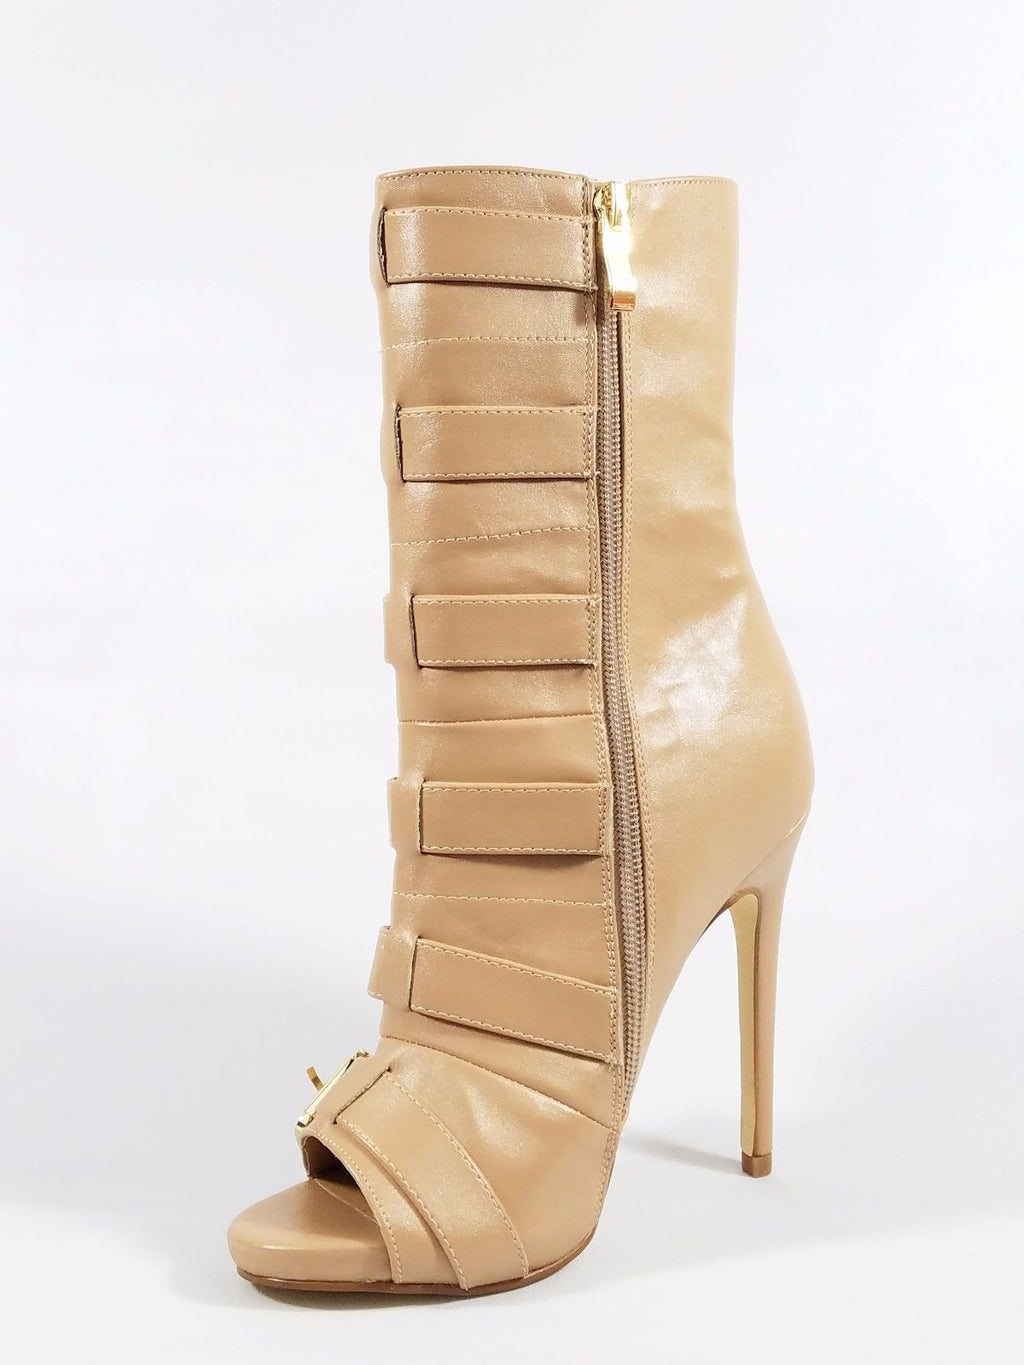 Nelly Bernal Lola Nude Open Toe 5 Buckle 4.75 Heel Ankle Boot